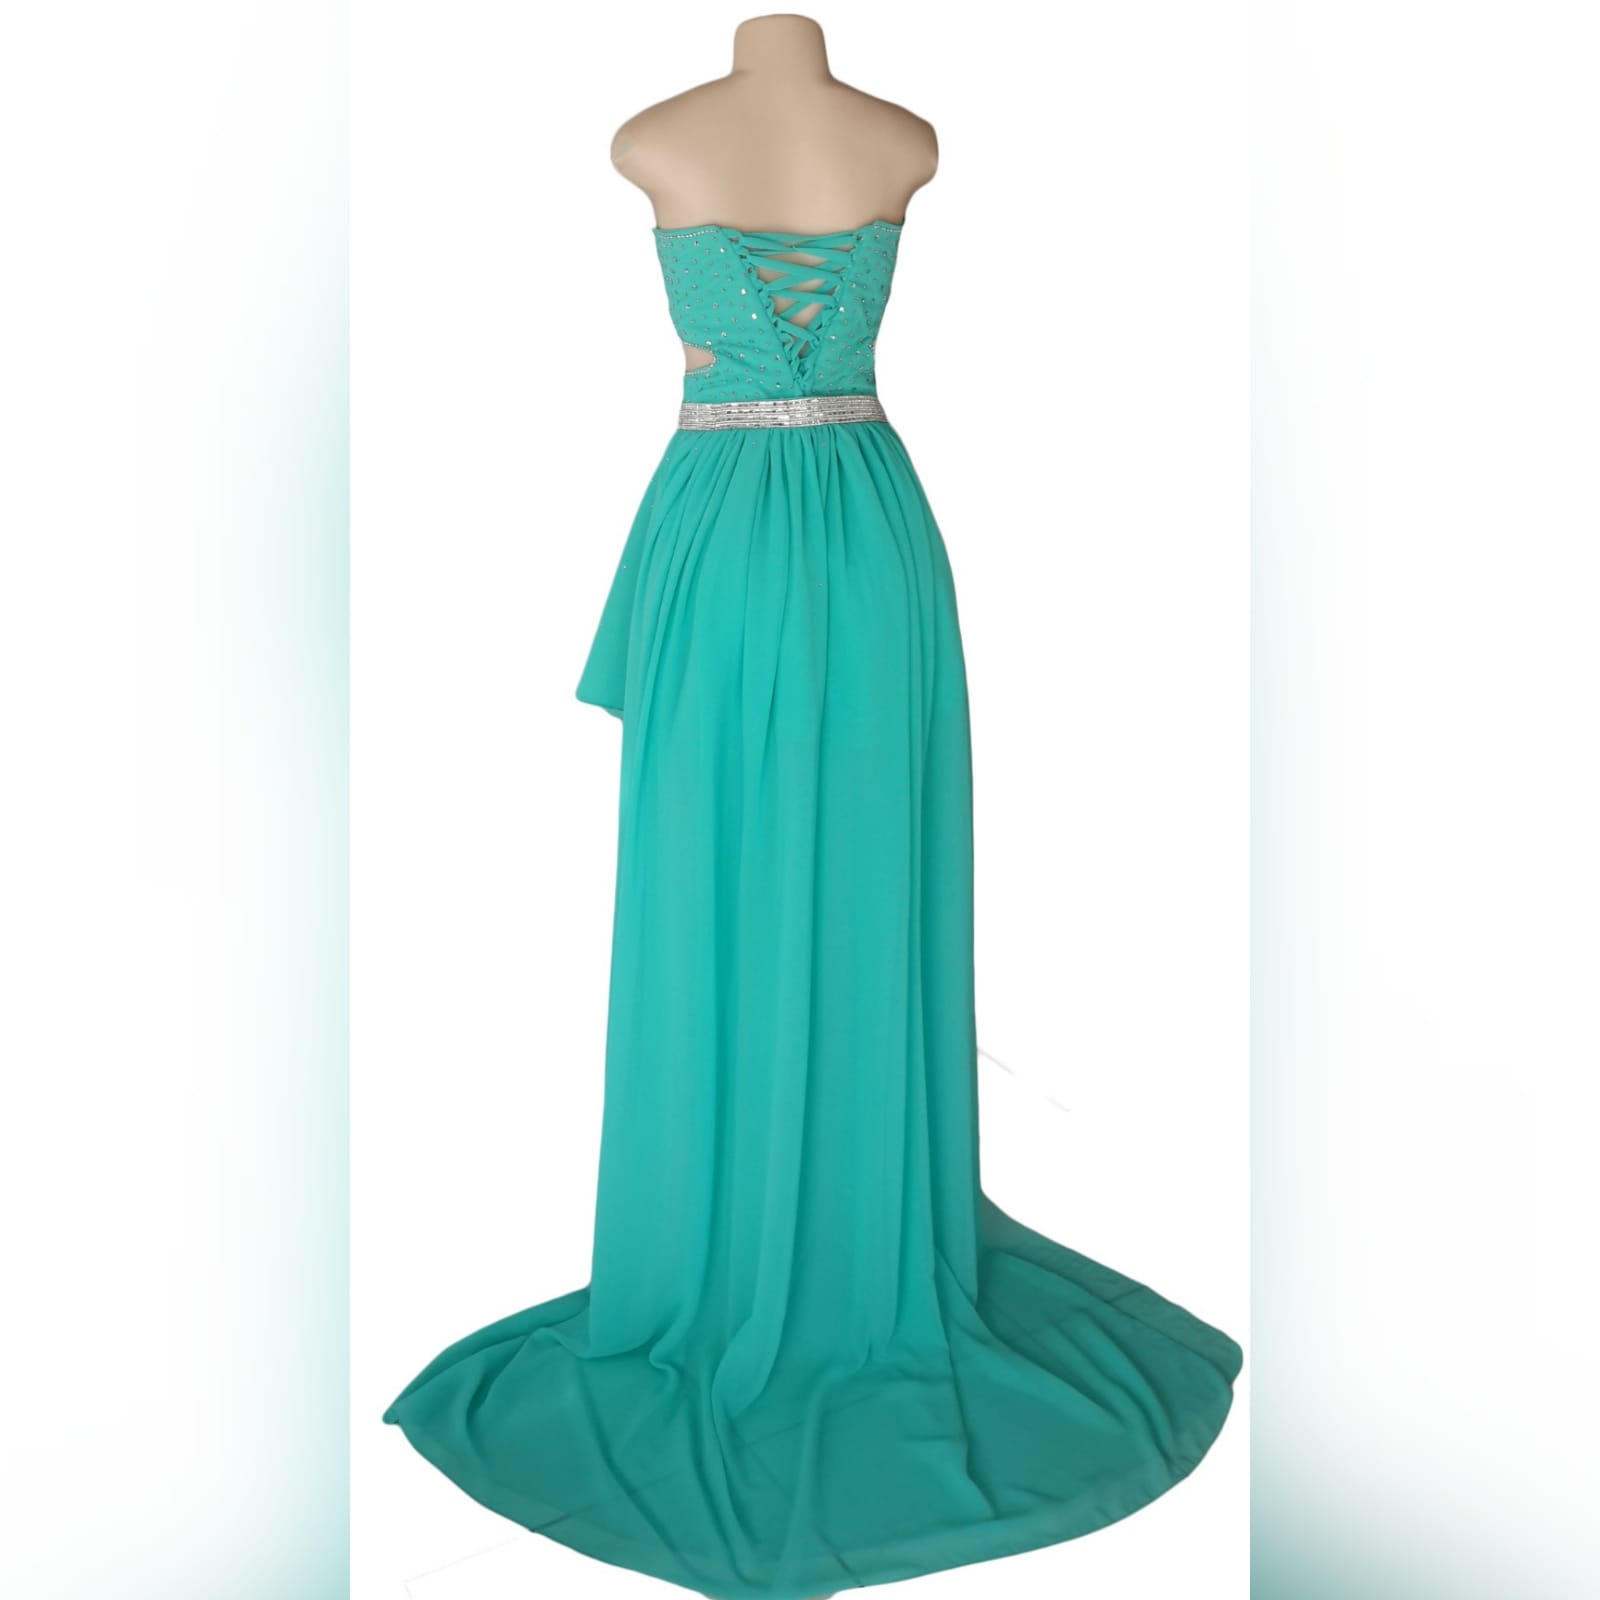 Turquoise 2 piece high low prom dress 5 turquoise 2 piece high low prom dress. Boobtube short dress with a sweetheart neckline and side tummy opening, lace-up back with bodice beaded in silver. With a detachable chiffon train creating a high low effect, with a wide silver belt.